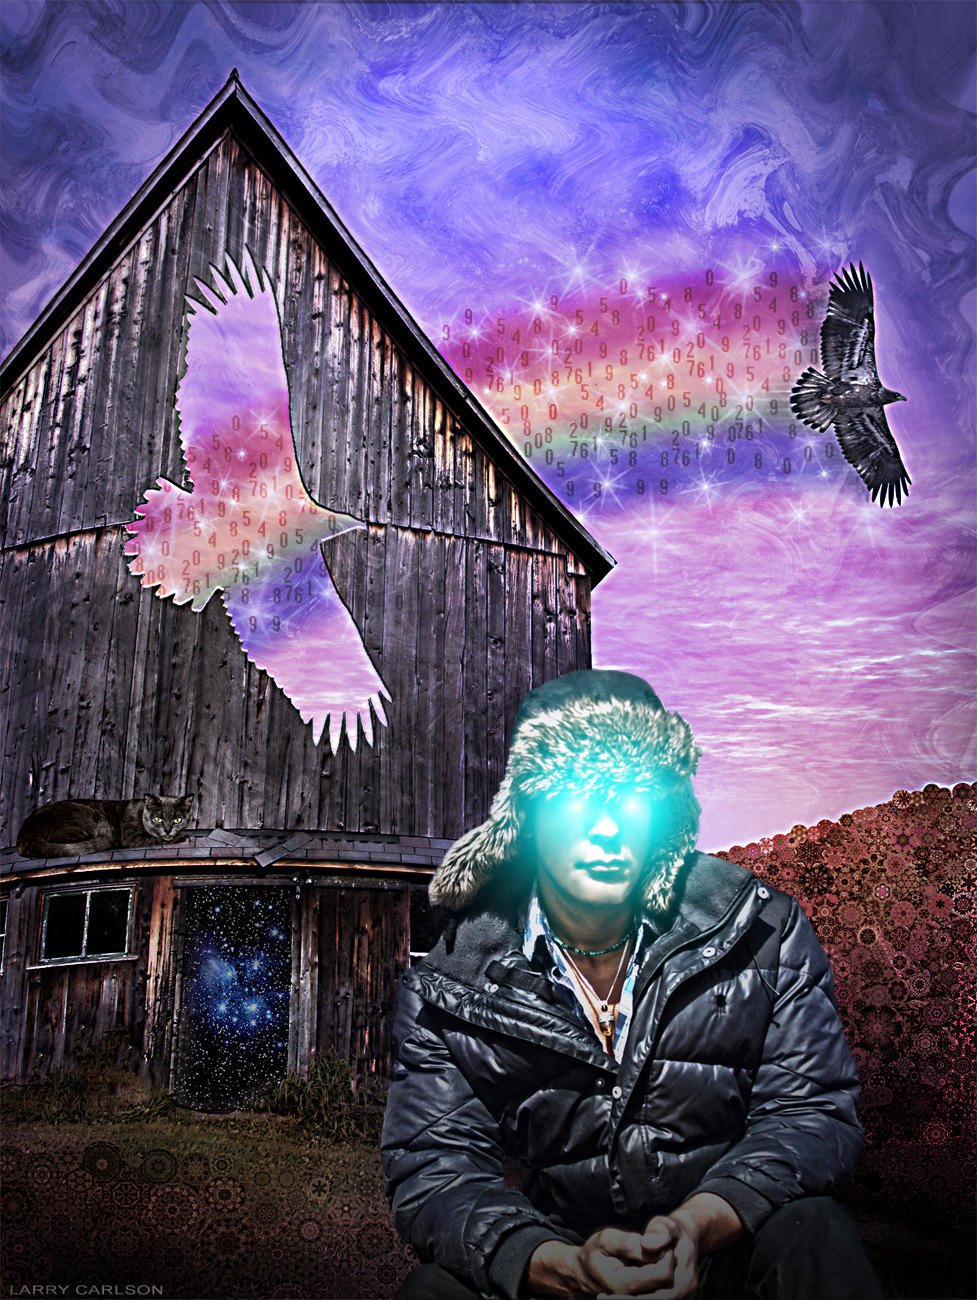 LARRY CARLSON, SELF PORTRAIT - AUTUMN MAGIC, digital photography, 2011.